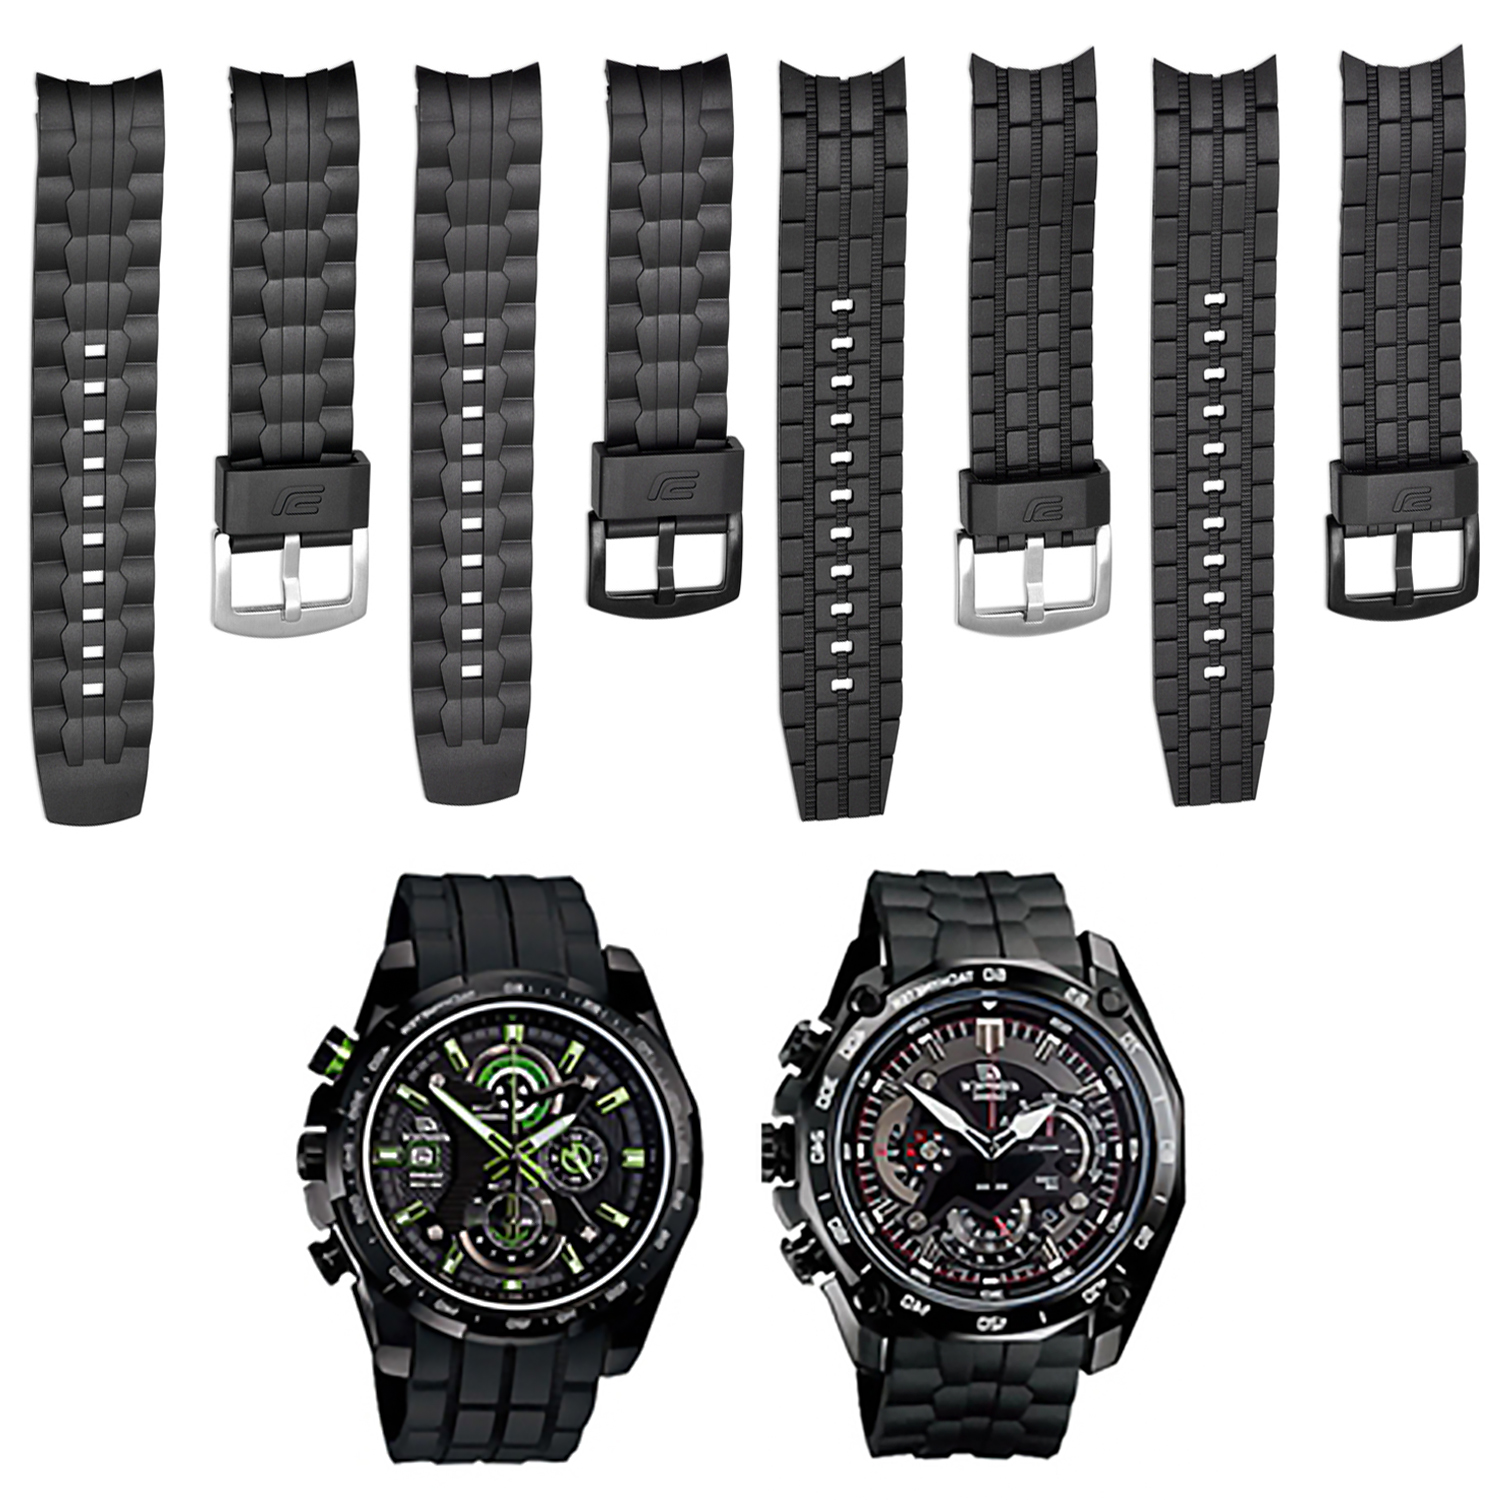 Gosear Replacement Watch Strap Band Belt Adjustable Breathable Wristband for Casio Edifice EF-550 EF-523 Watch Accessories